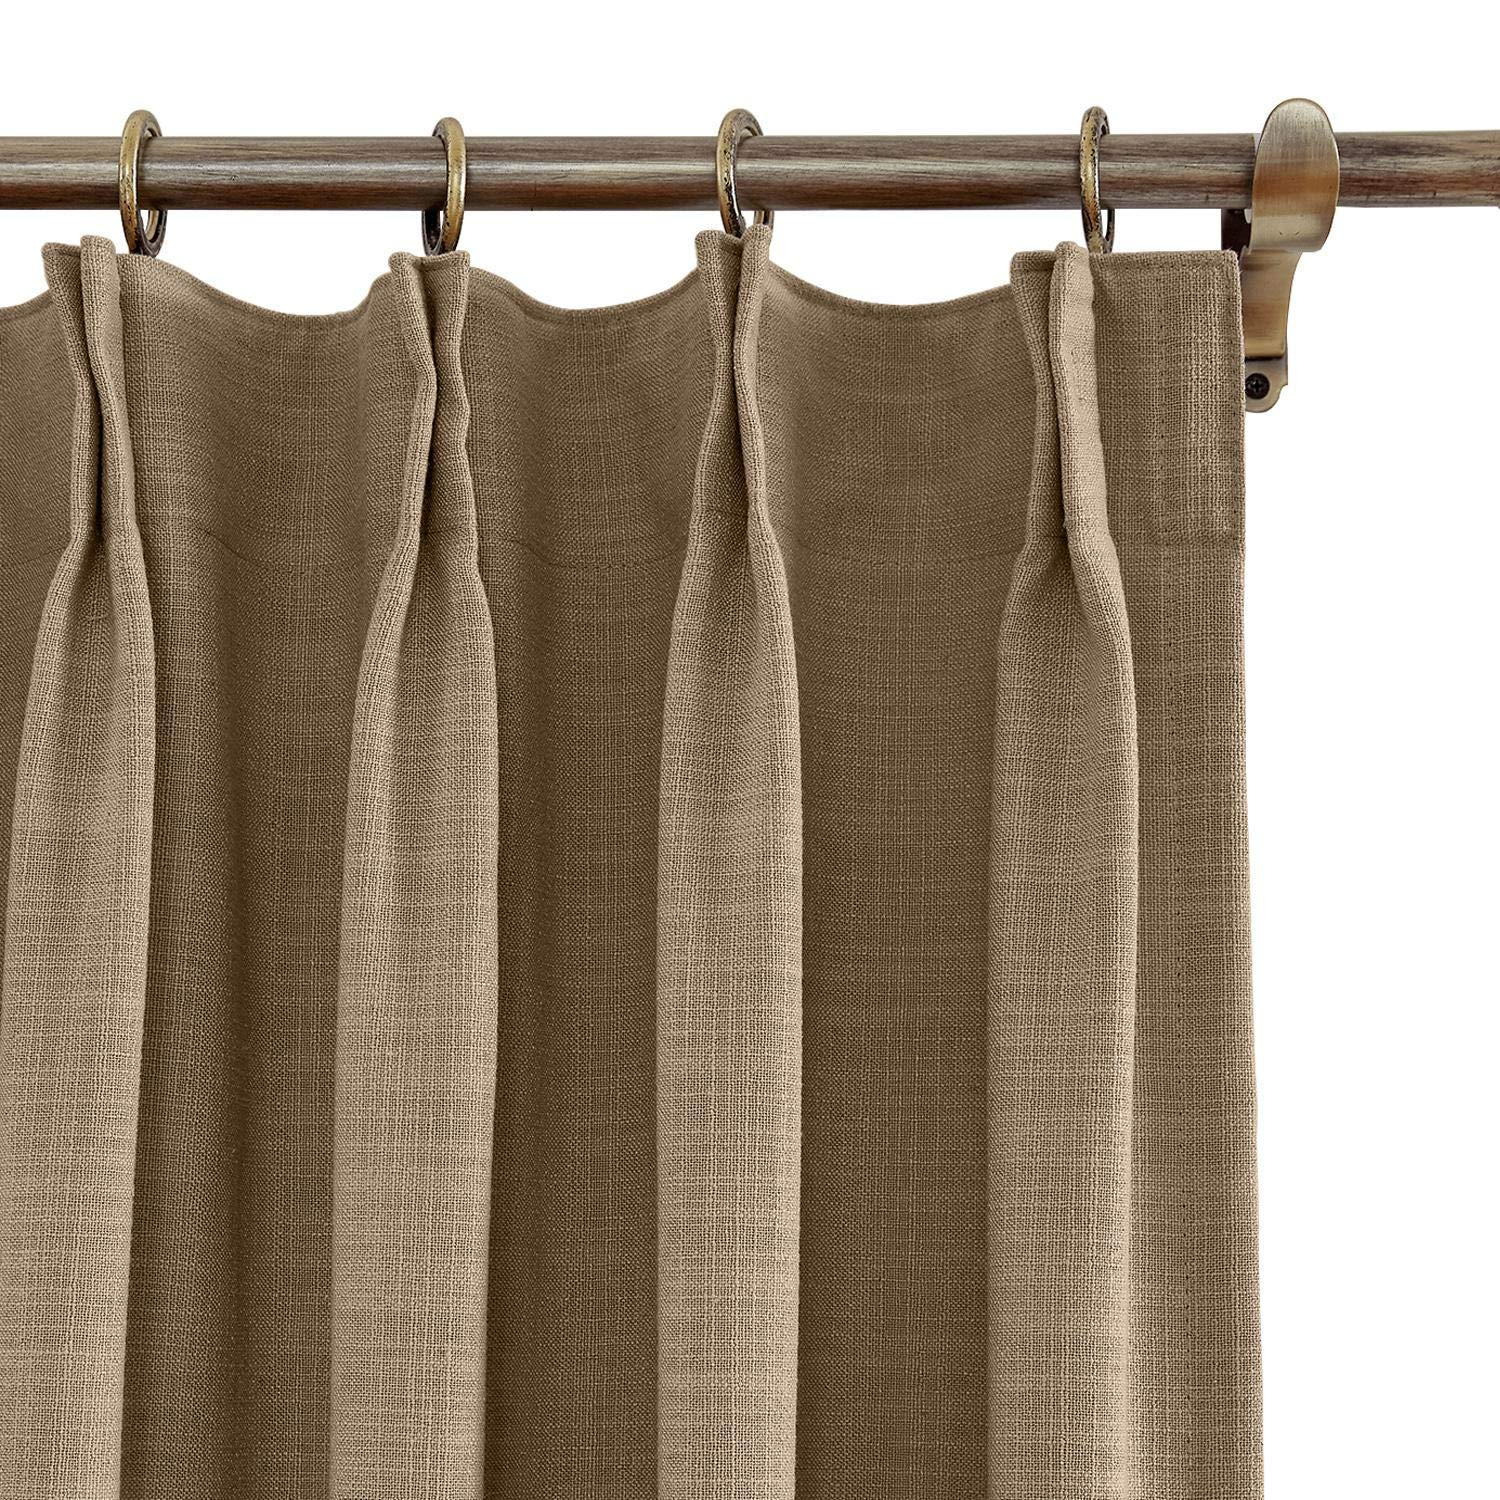 Cottontree Homesoft FirstHomer Polyester Linen Curtain Thermal Blackout Lining Pinch Pleat Drape for Sliding Door Patio Door Bedroom,100W84L,1 Panel, Brown